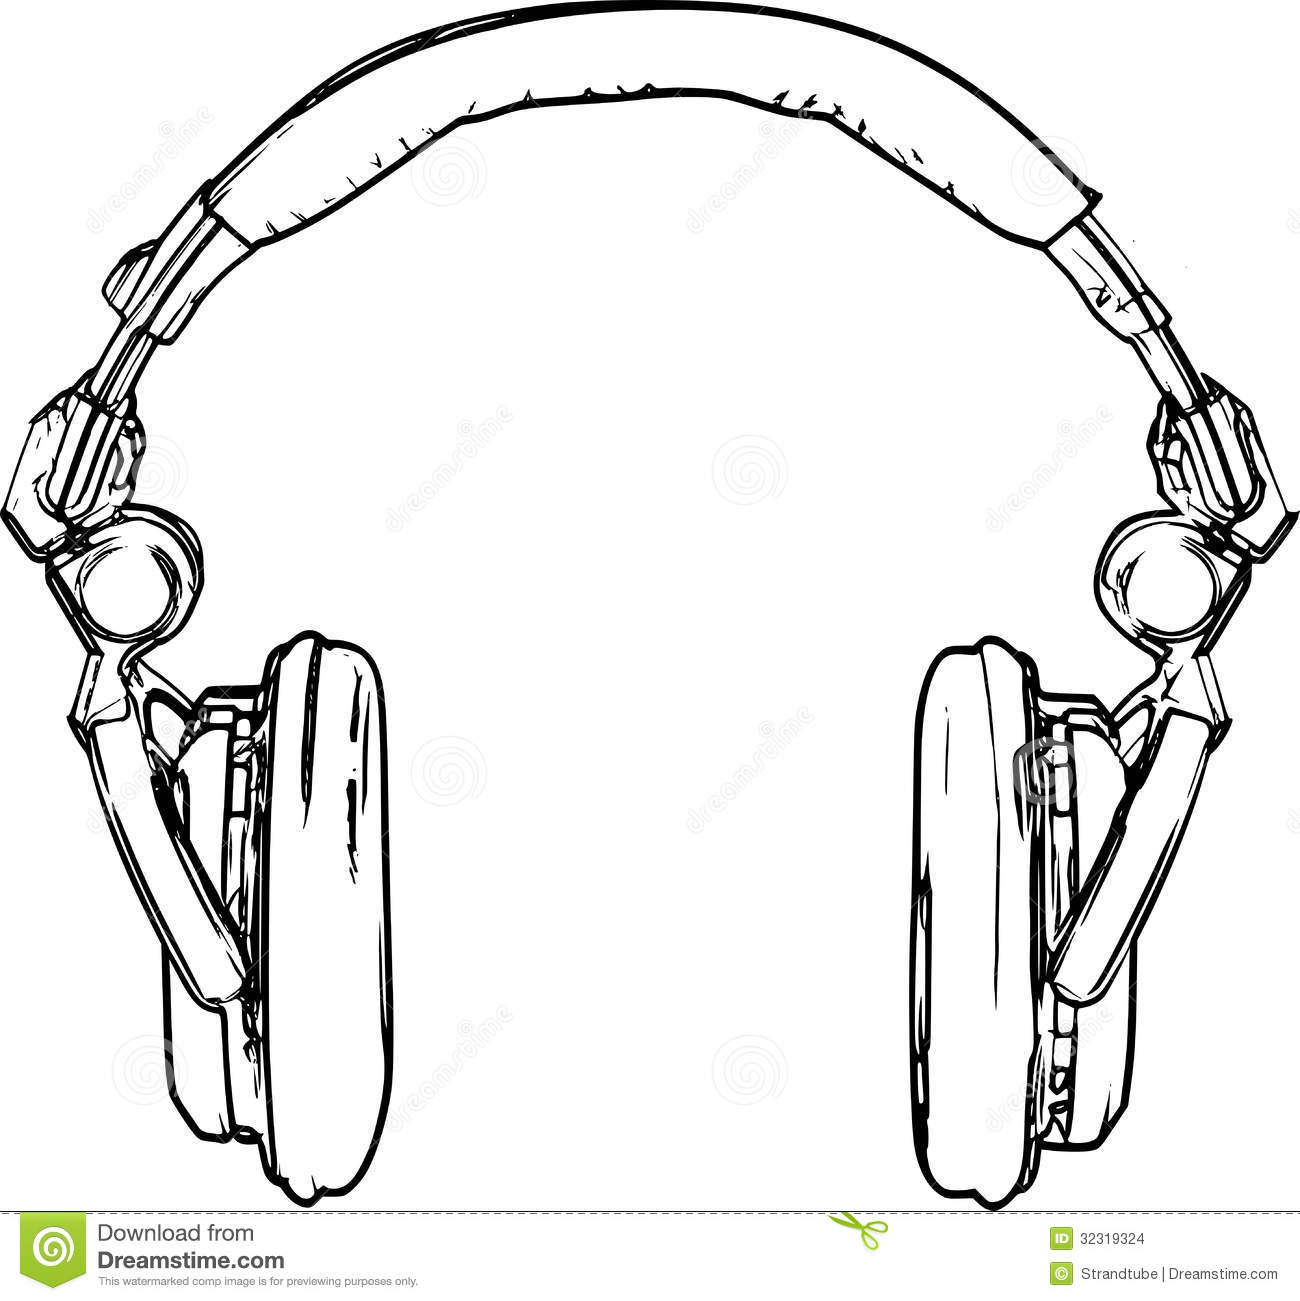 Headphone Drawing At Getdrawings Com Free For Personal